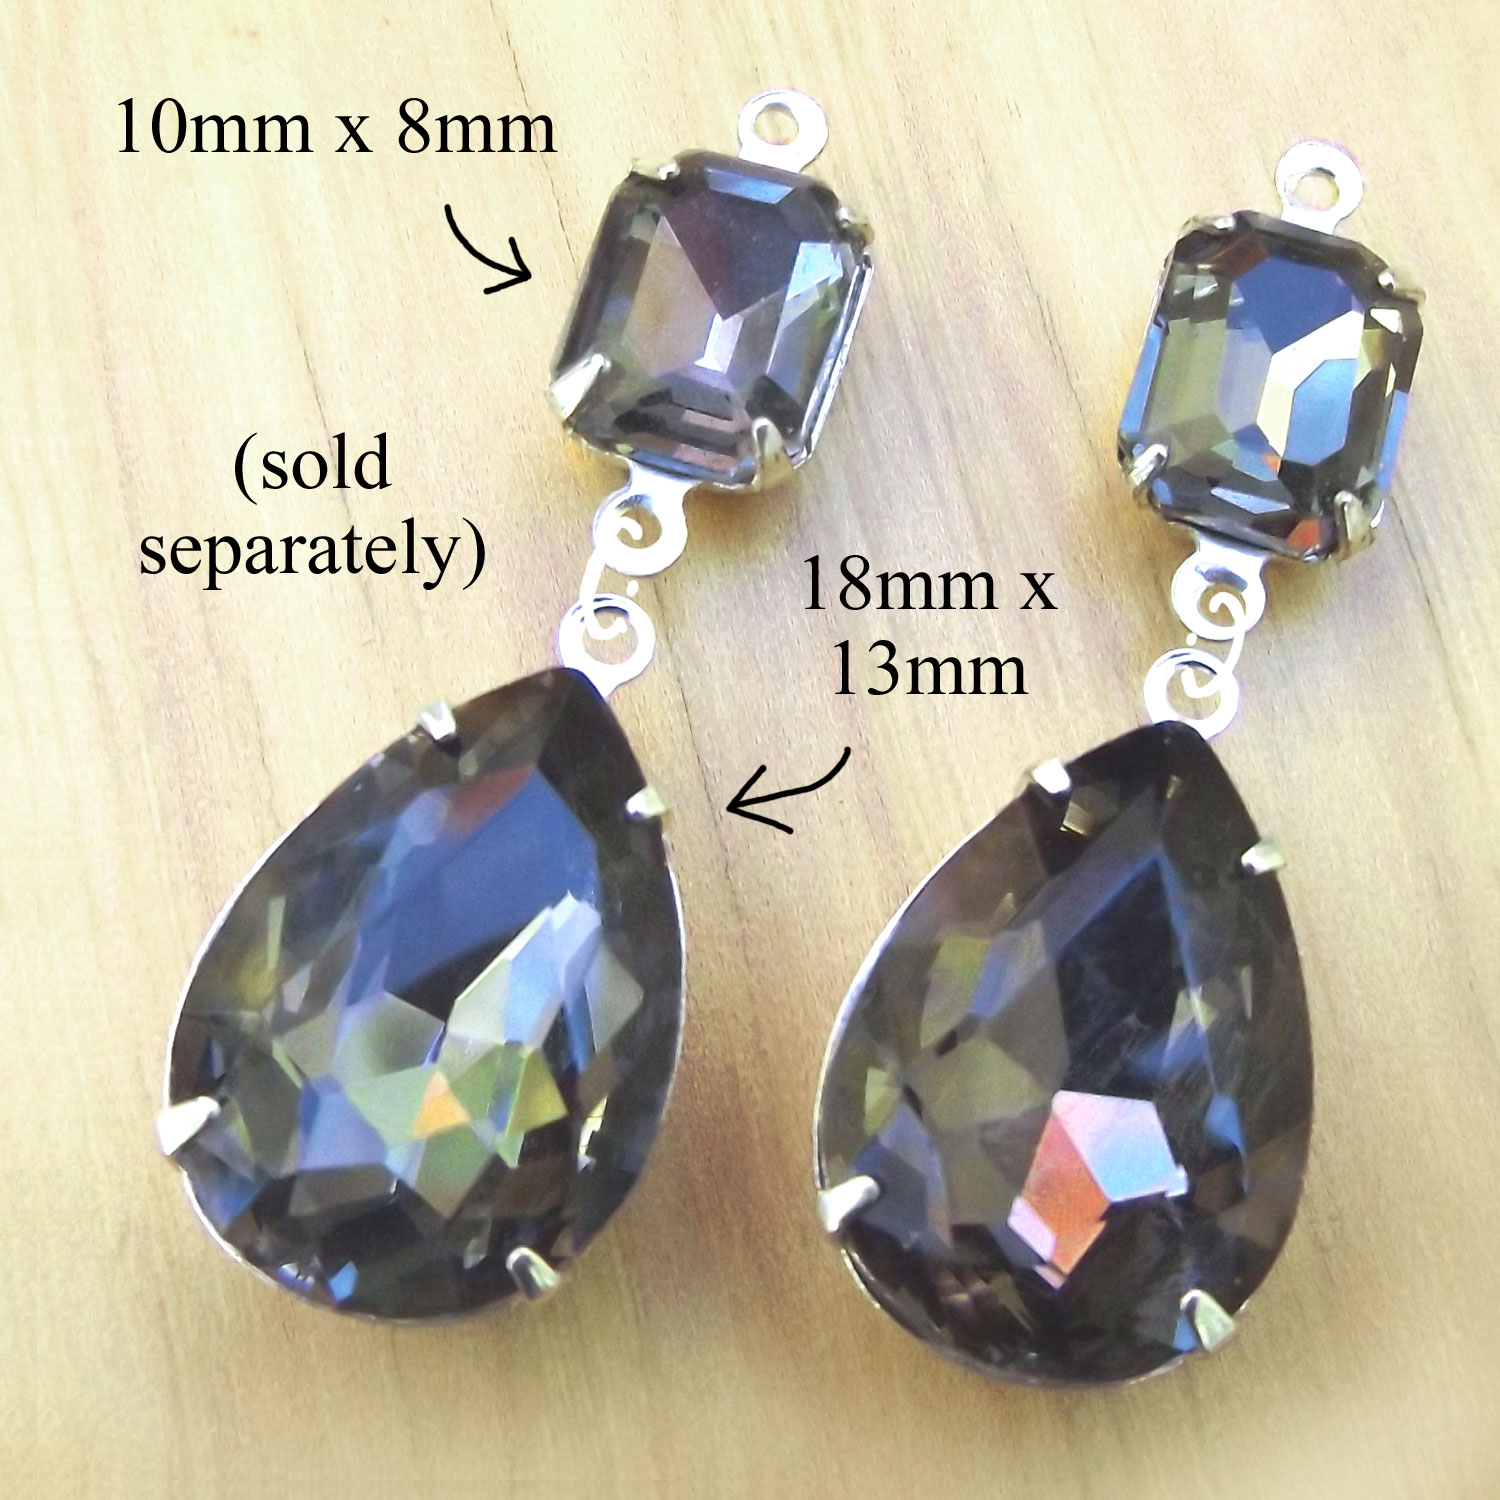 black diamond rhinestone teardrops paired with small faceted octagons for DIY earrings